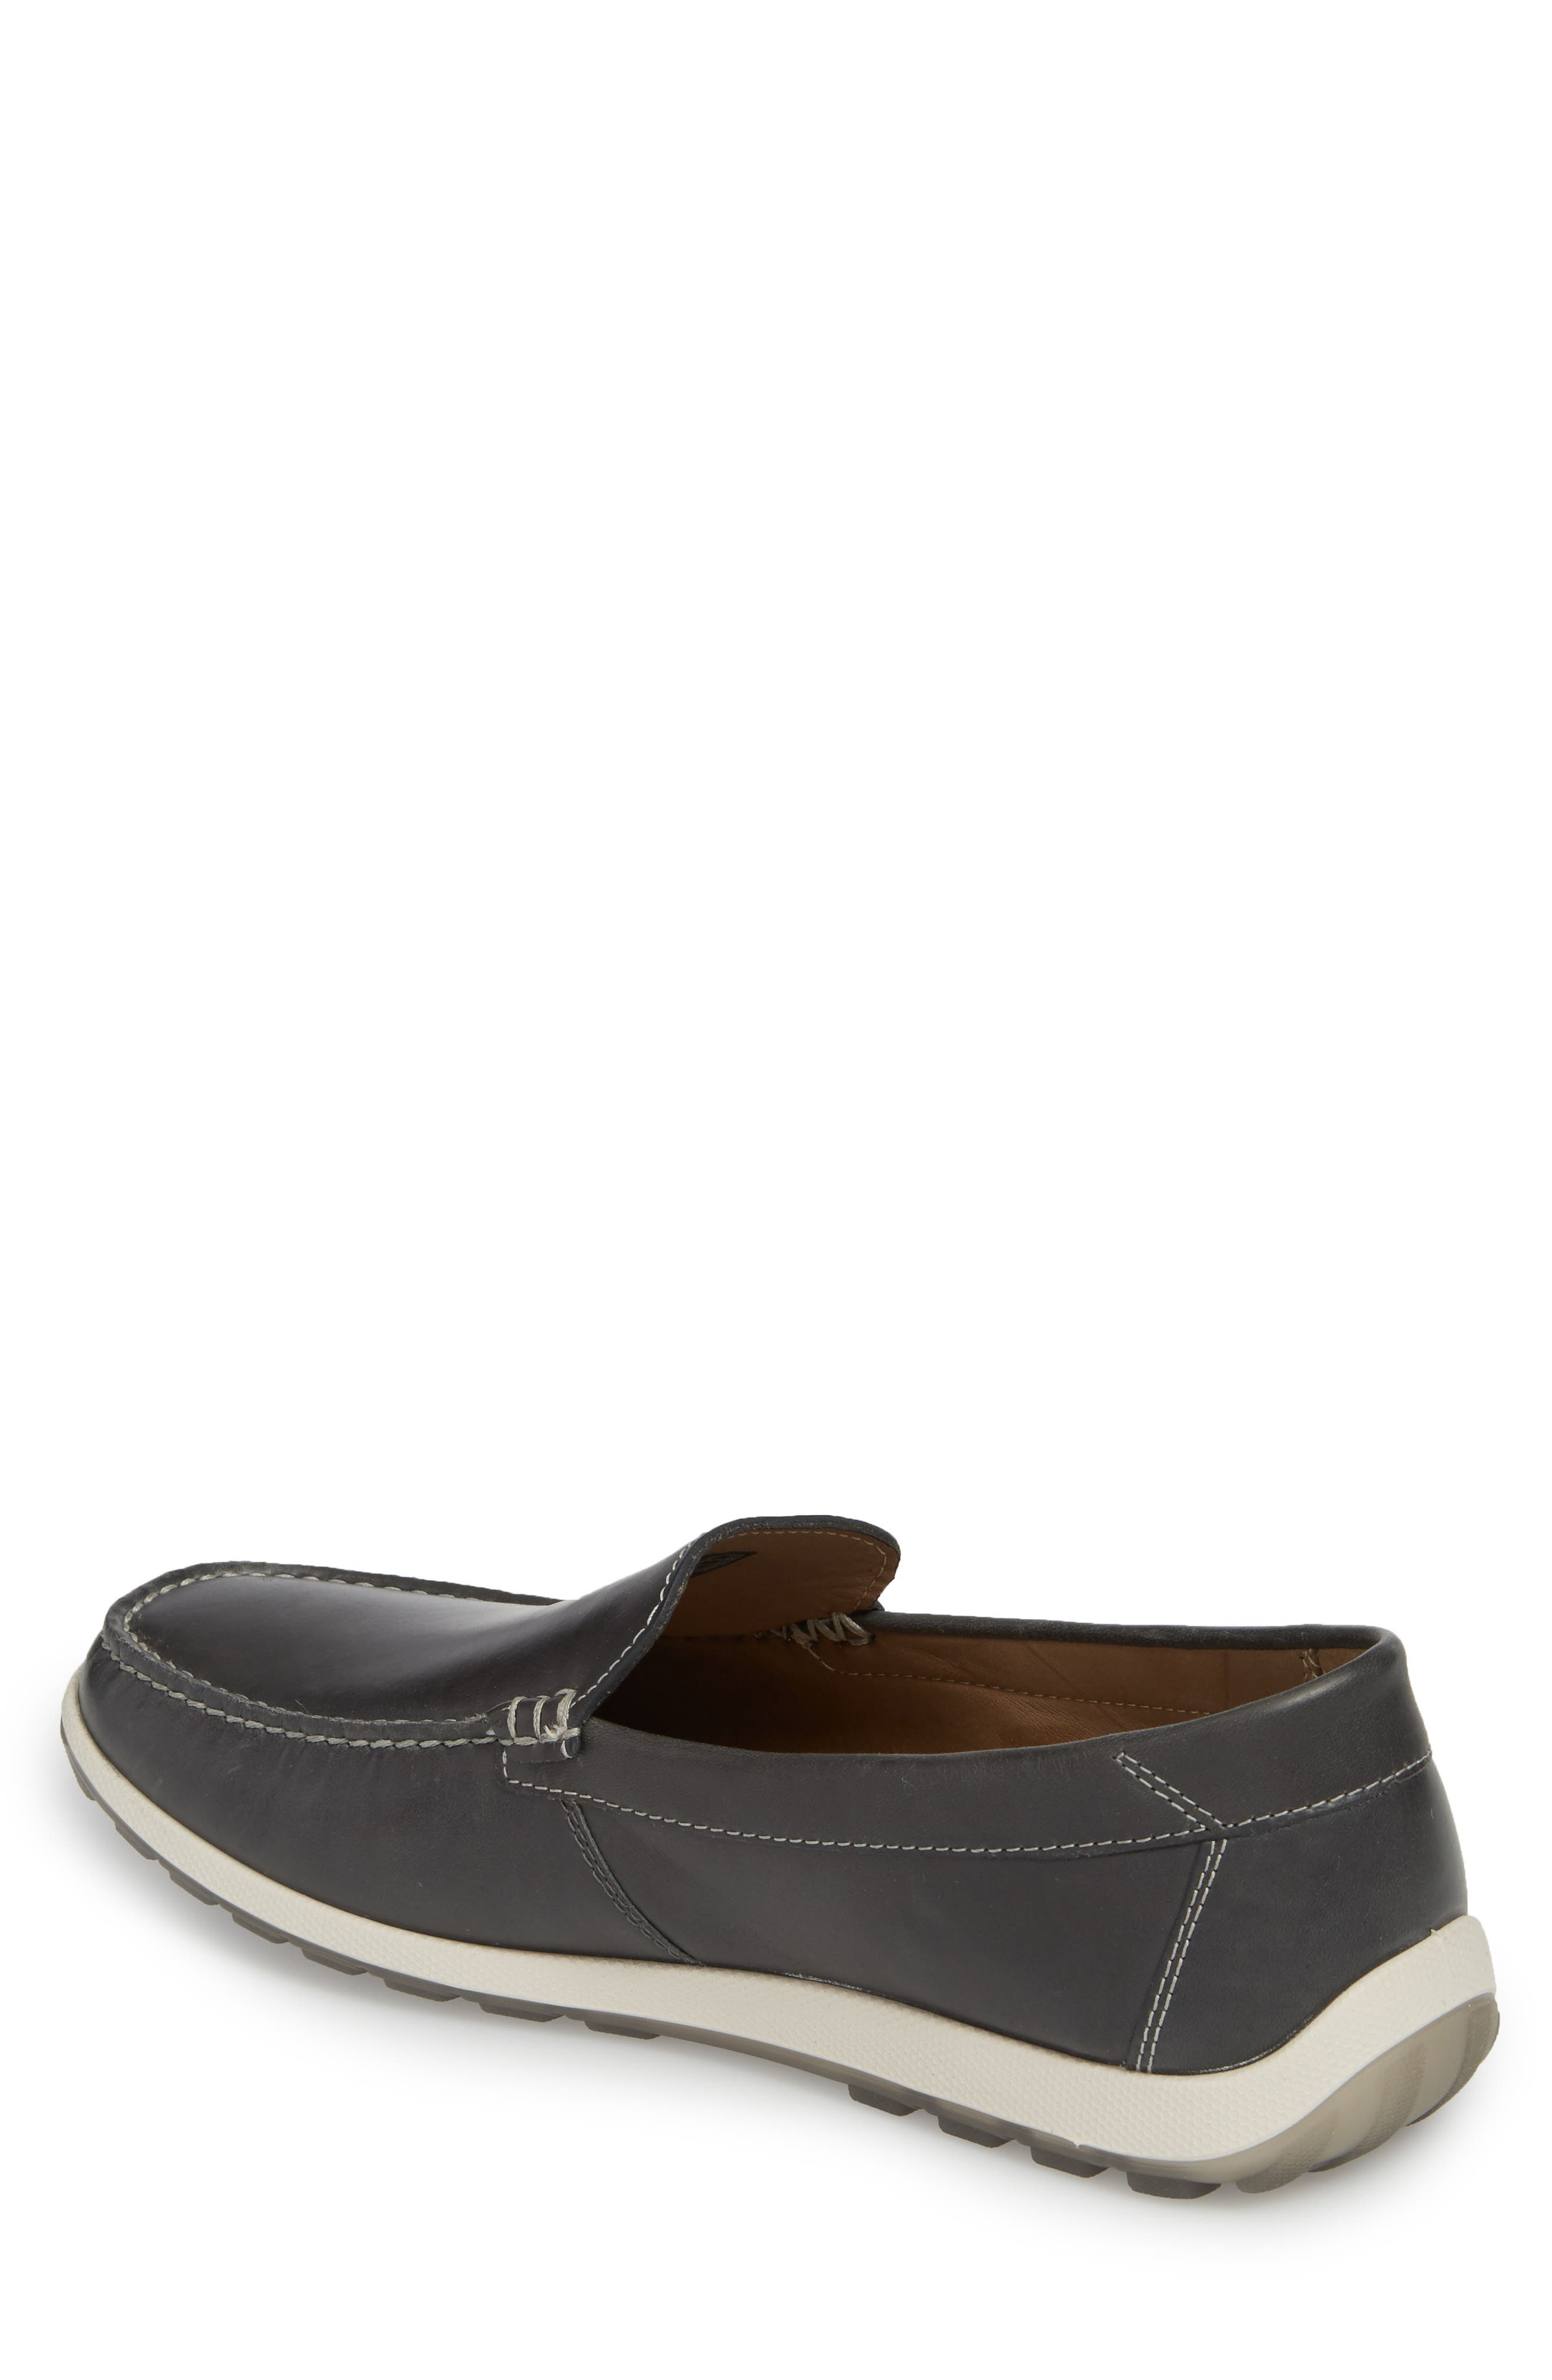 Dip Moc Toe Driving Loafer,                             Alternate thumbnail 3, color,